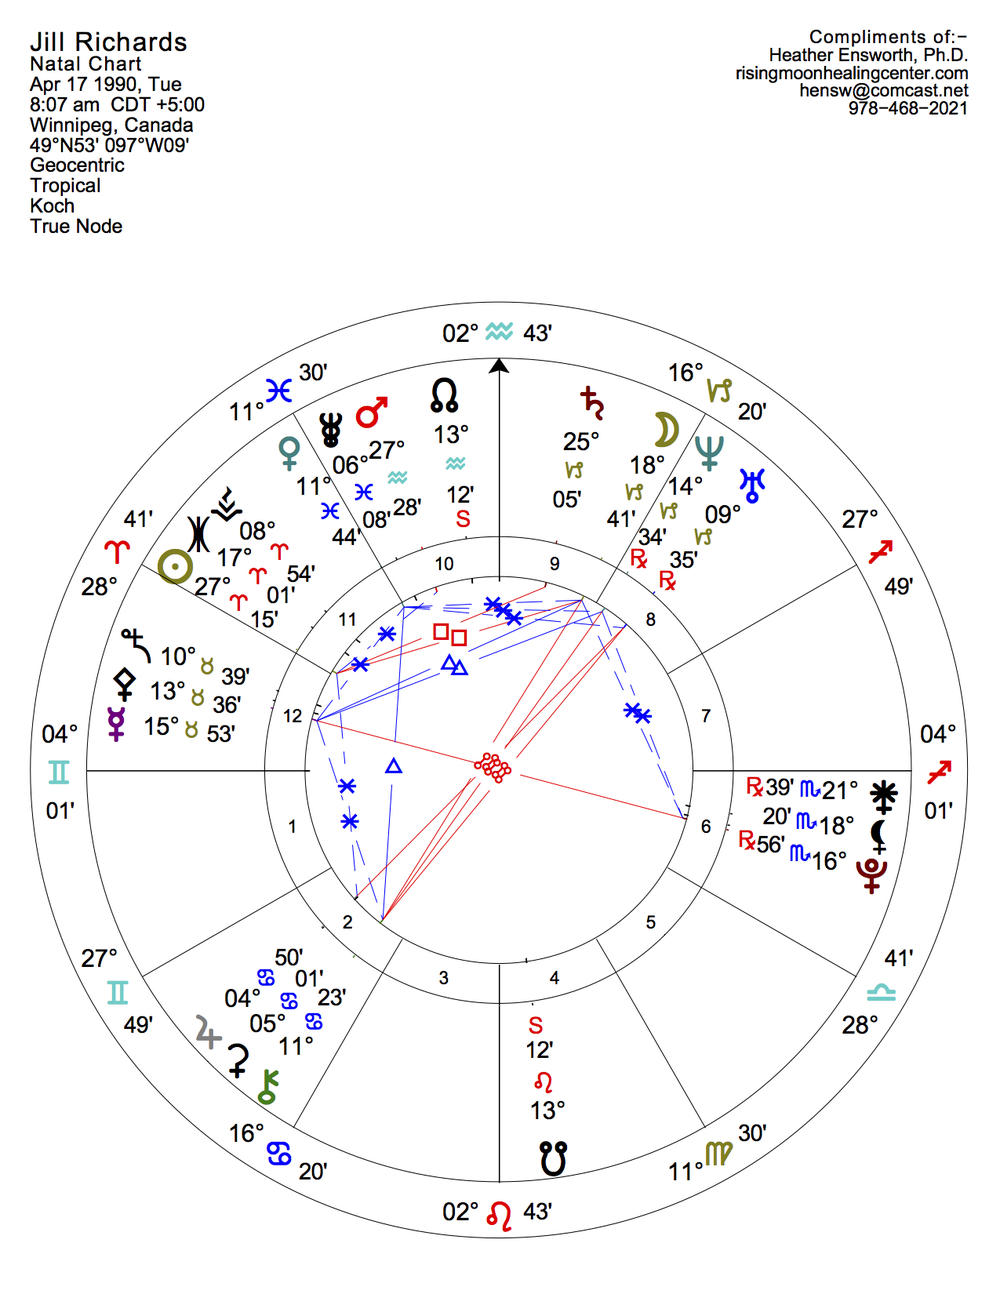 Jill's birth chart copy.jpg